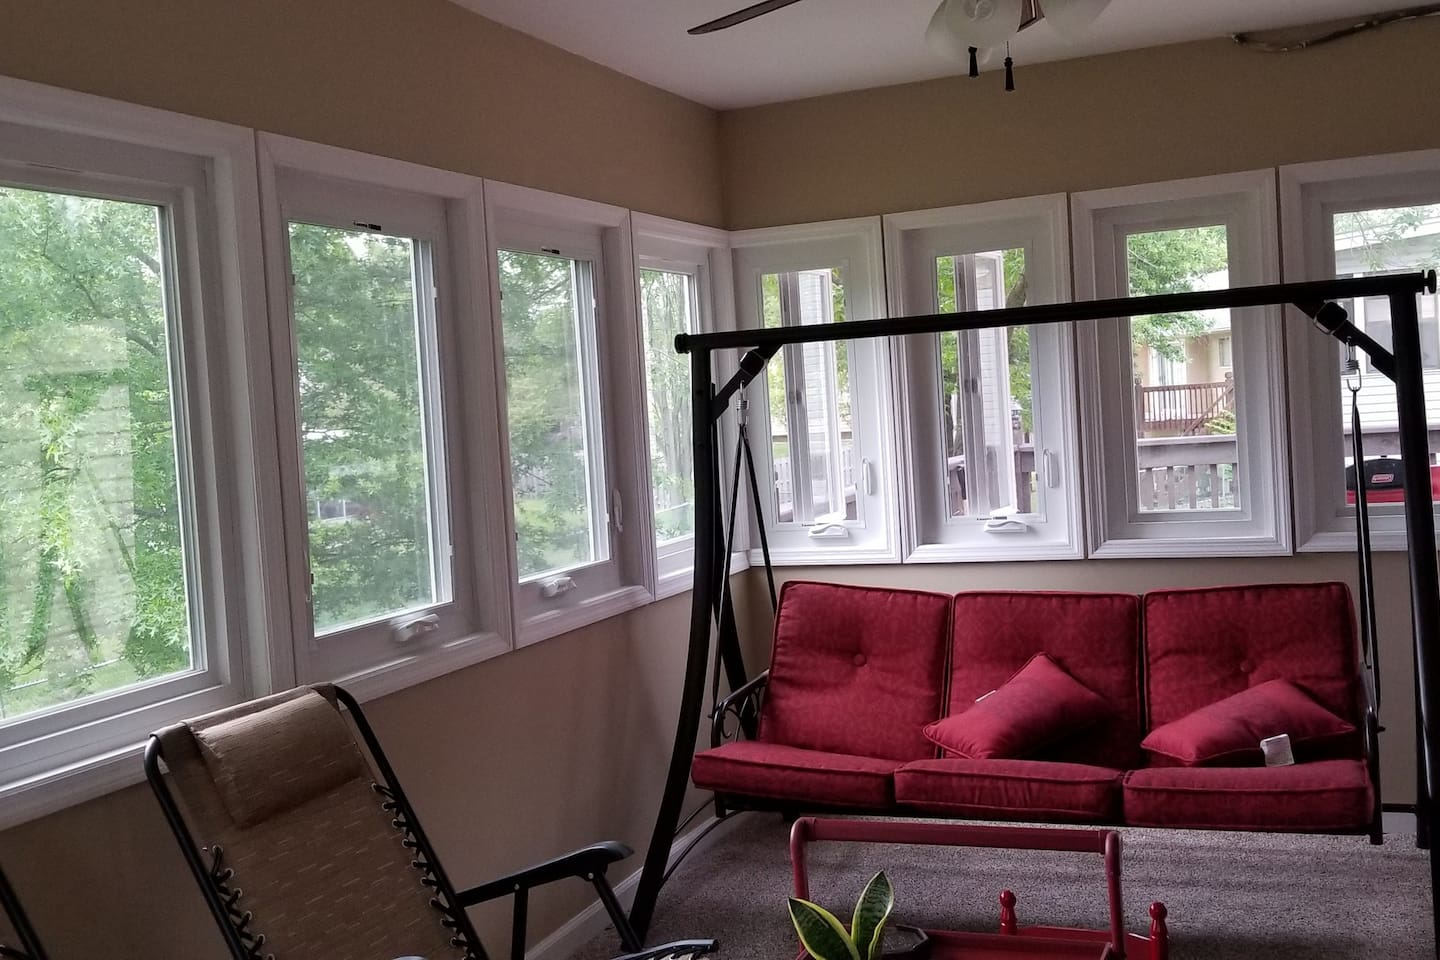 Newly renovated enclosed porch / sunroom. It has swing, HDTV and a view of backyard.